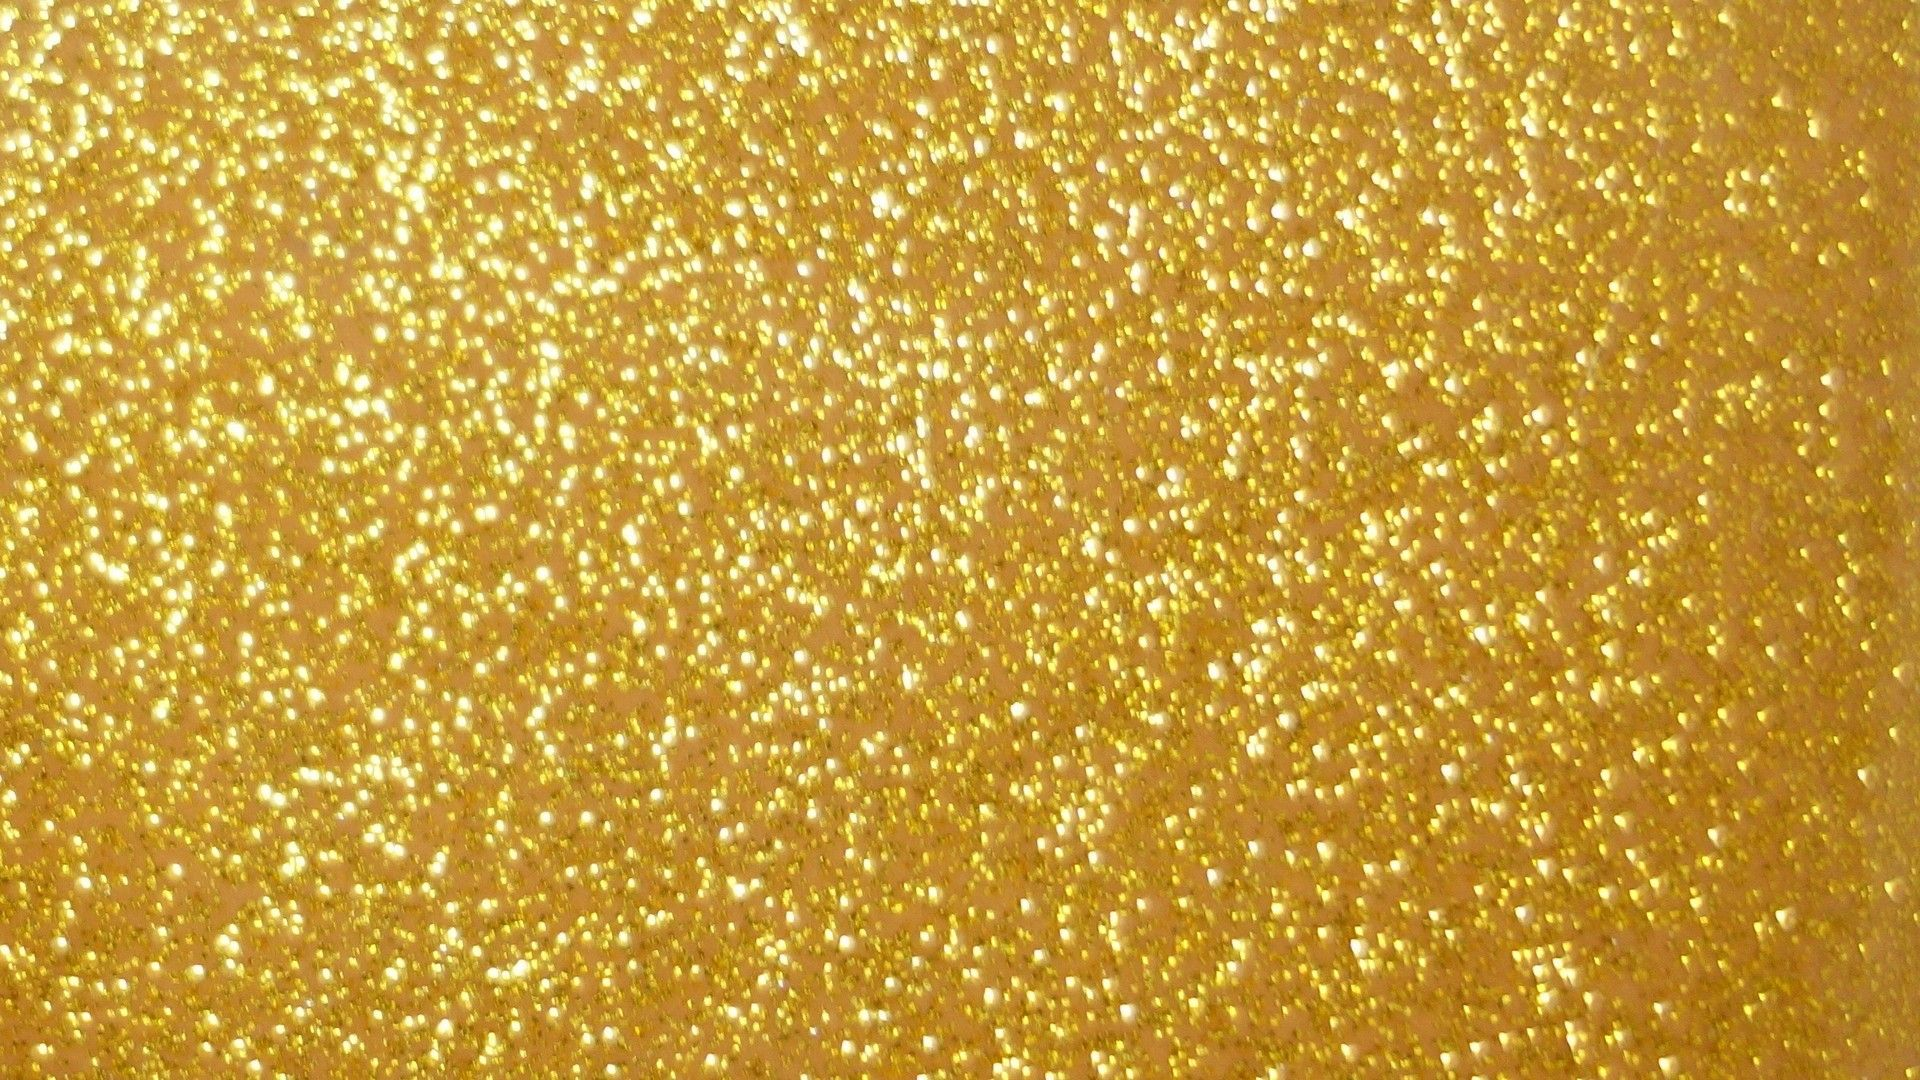 Gold Glitter HD Backgrounds Hd backgrounds, Best